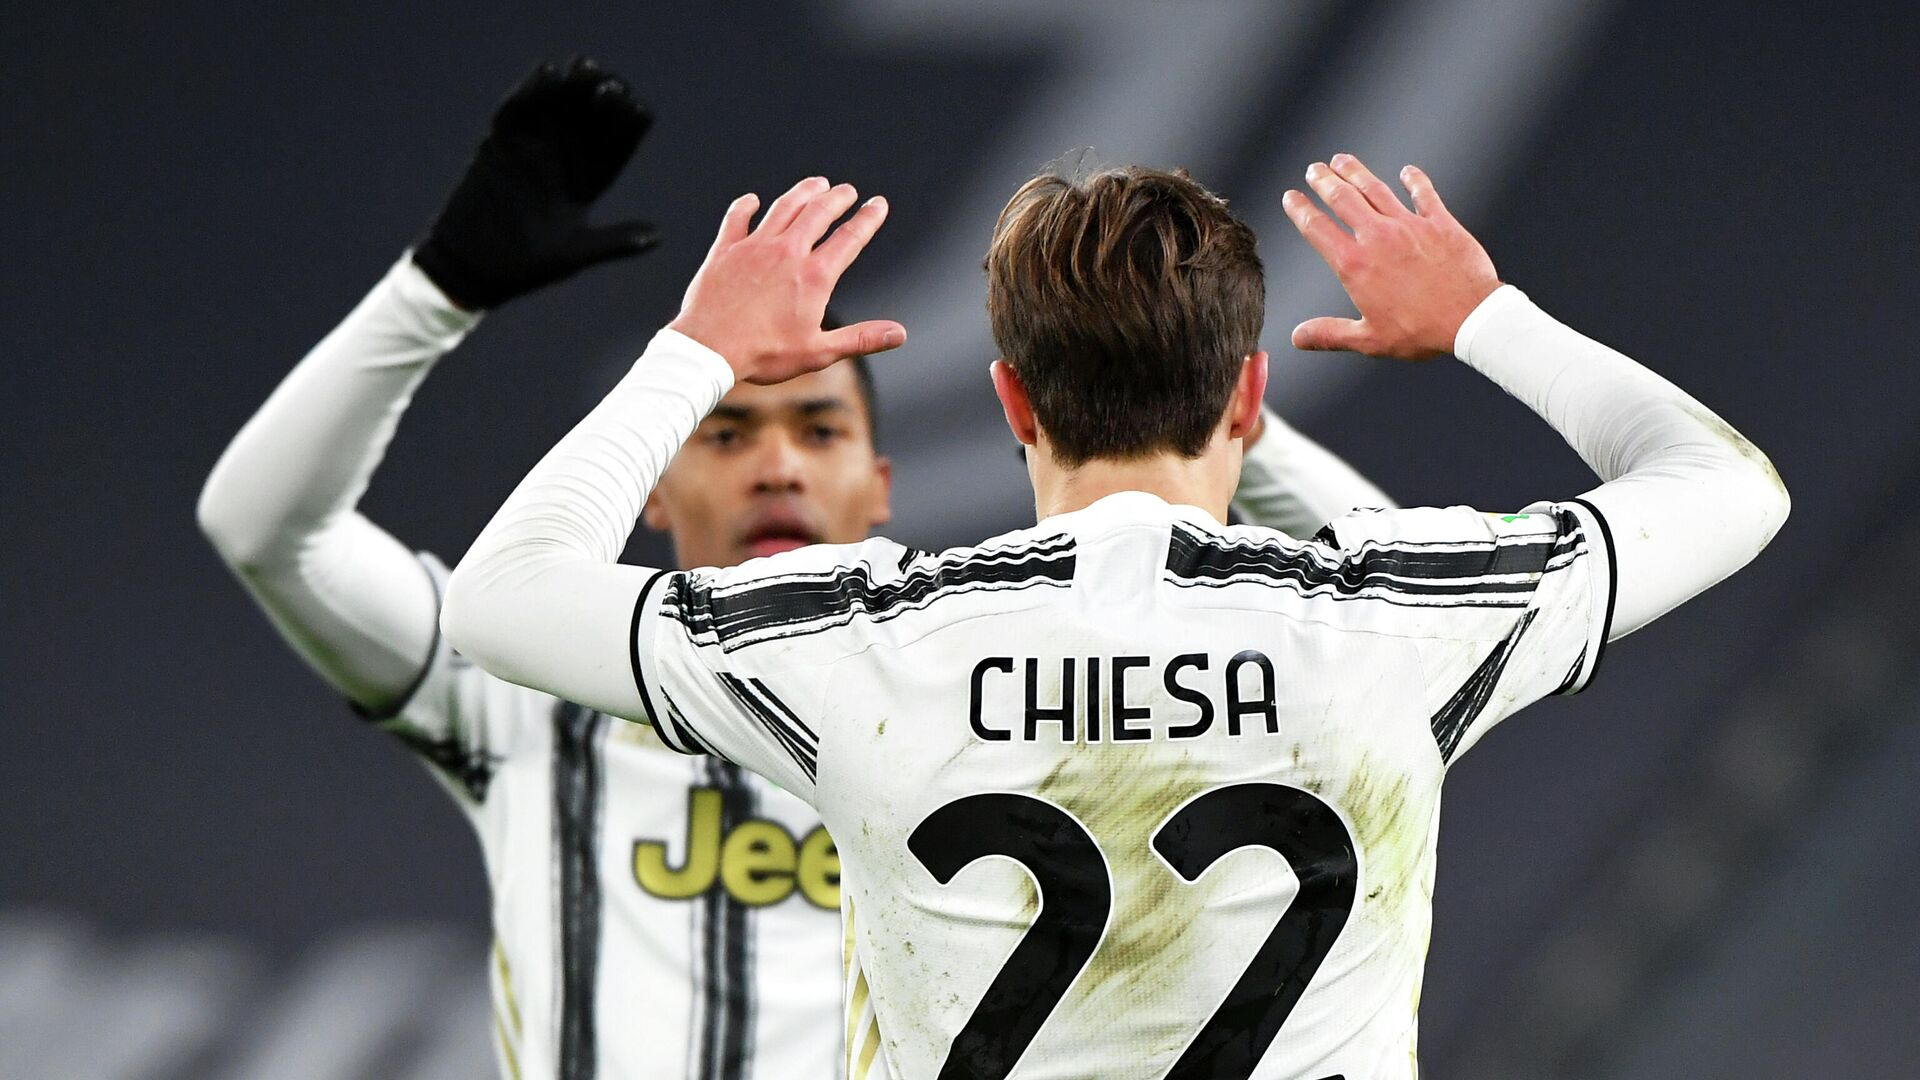 Juventus' Italian forward Federico Chiesa celebrates after scoring a goal during the Italian Cup quarter final football match beetween Juventus and Spal on January 27, 2021 at the Allianz stadium in Turin. (Photo by Isabella BONOTTO / AFP) - РИА Новости, 1920, 28.01.2021